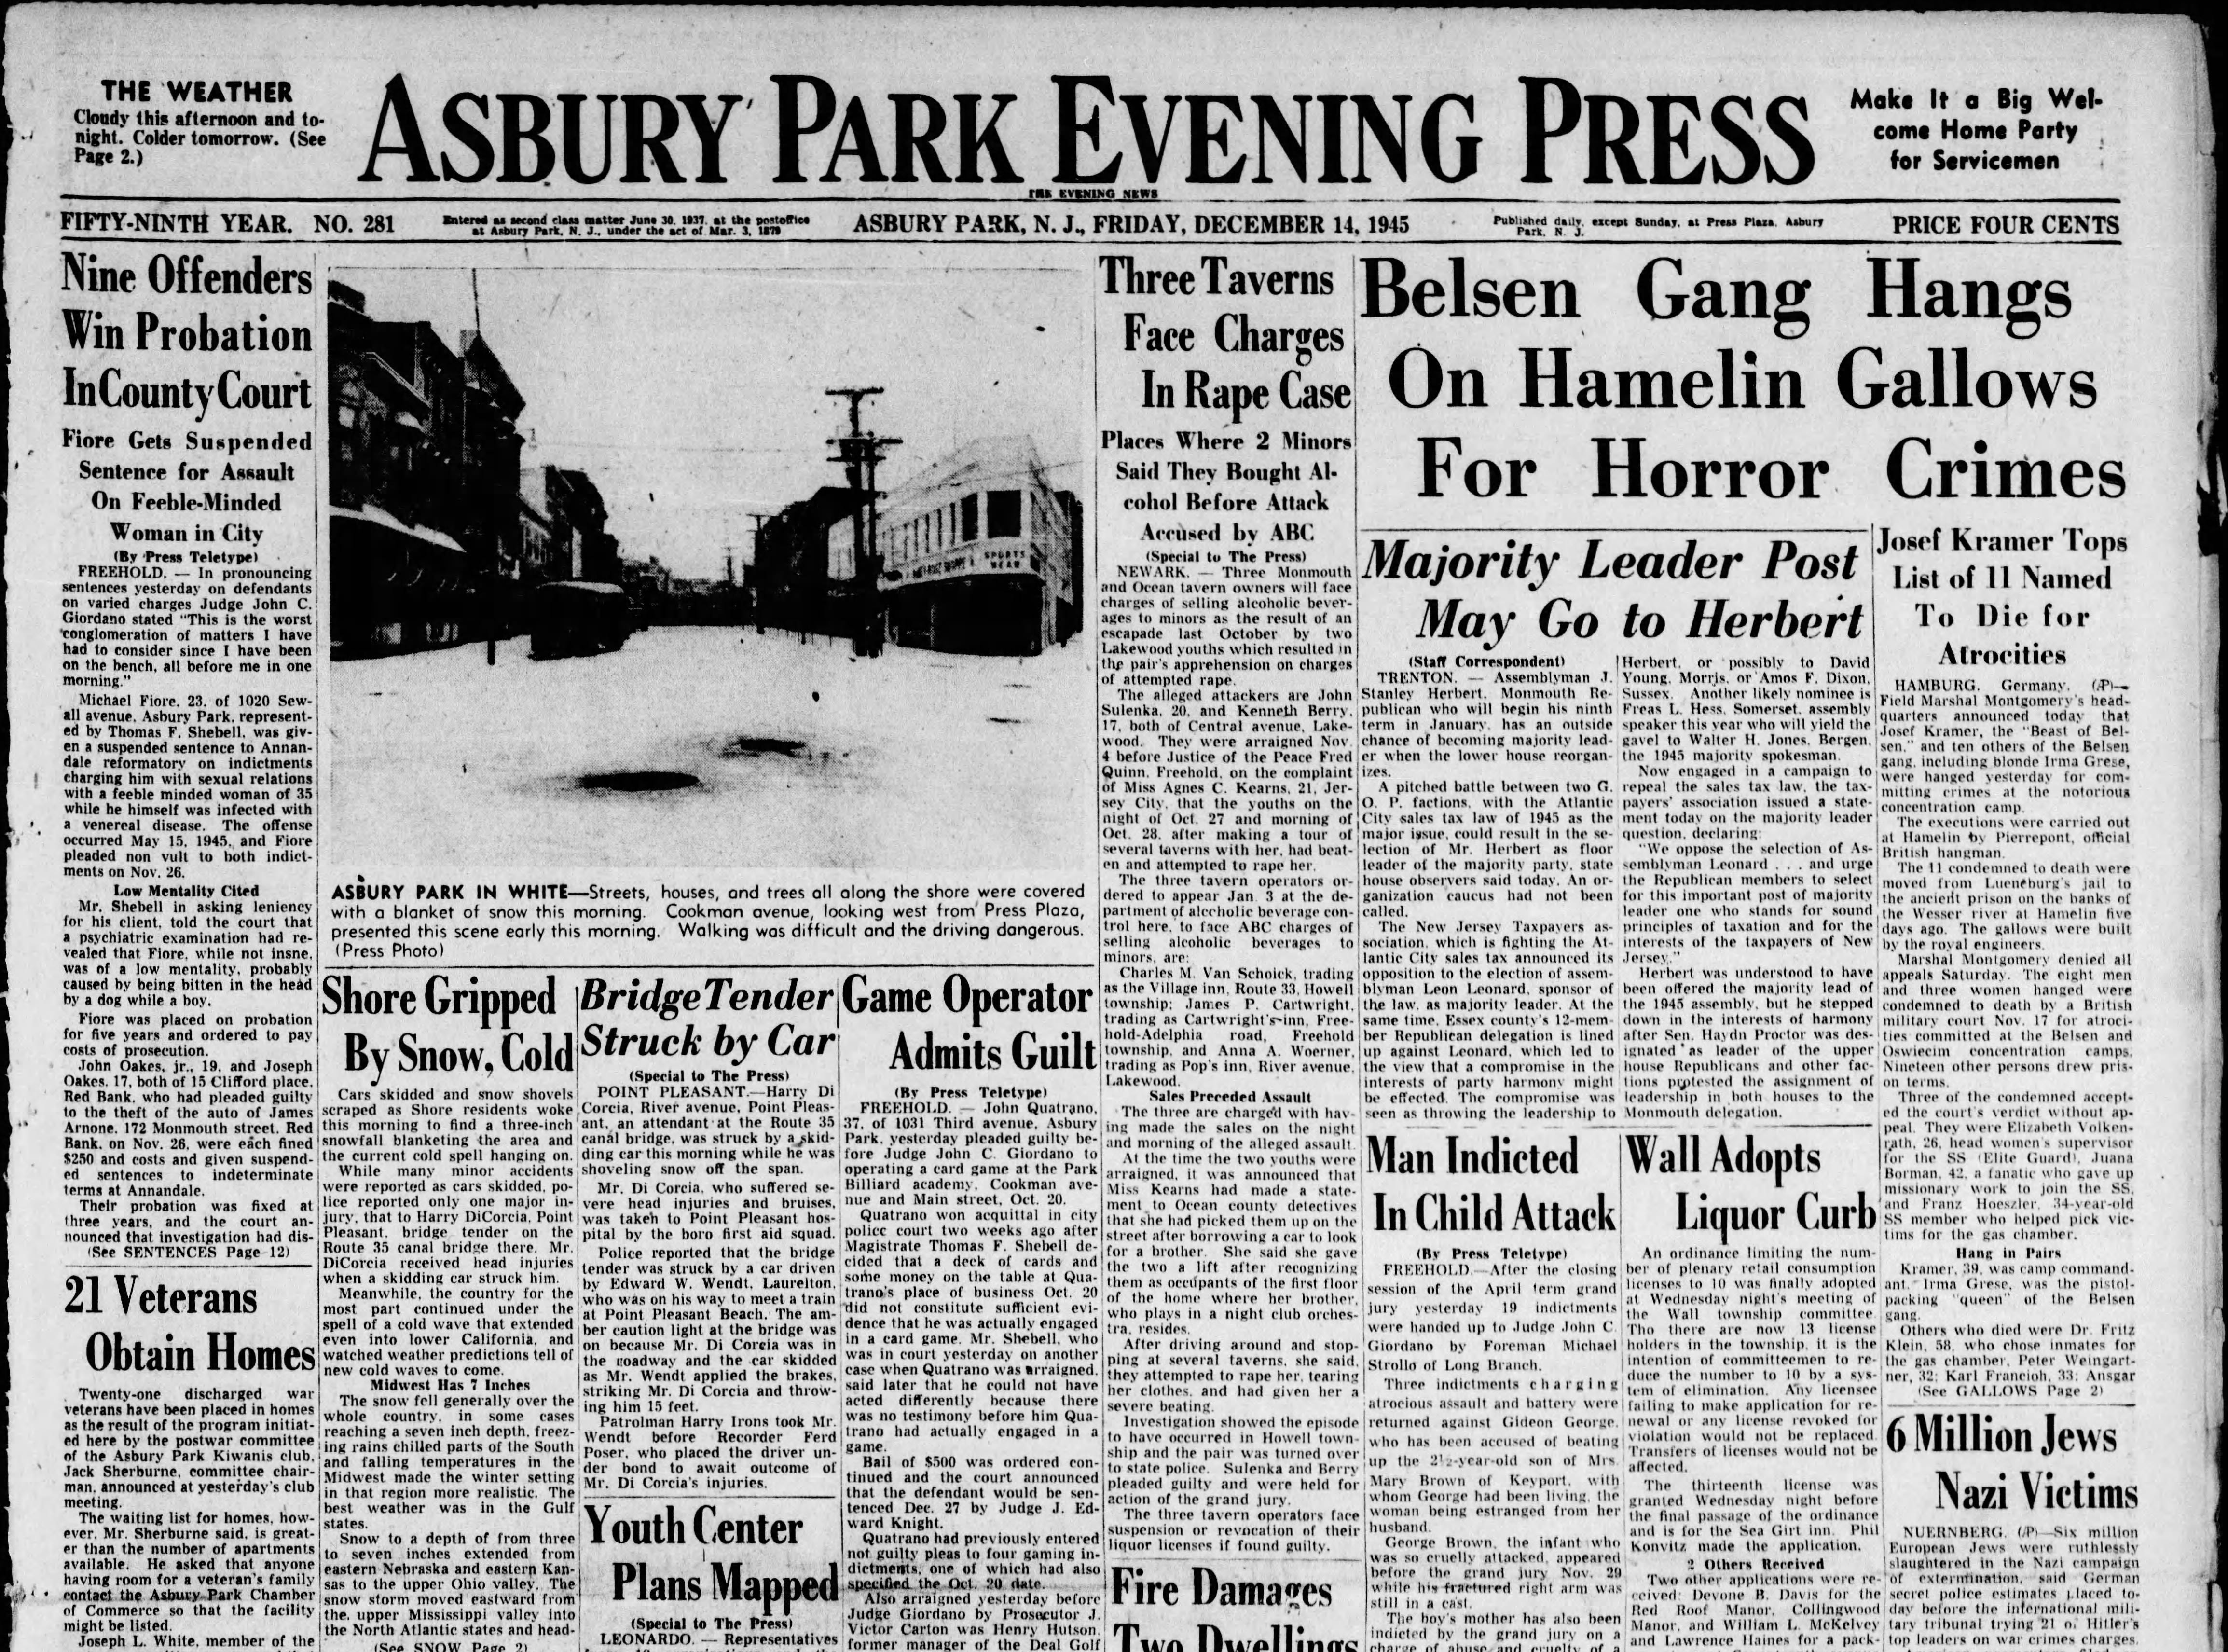 As the Nuremberg trials get underway in post-war Germany, the full horror of the Holocaust becomes apparent as news spreads that six million Jews were murdered under the Nazi regime in this edition from Friday, Dec. 14, 1945.